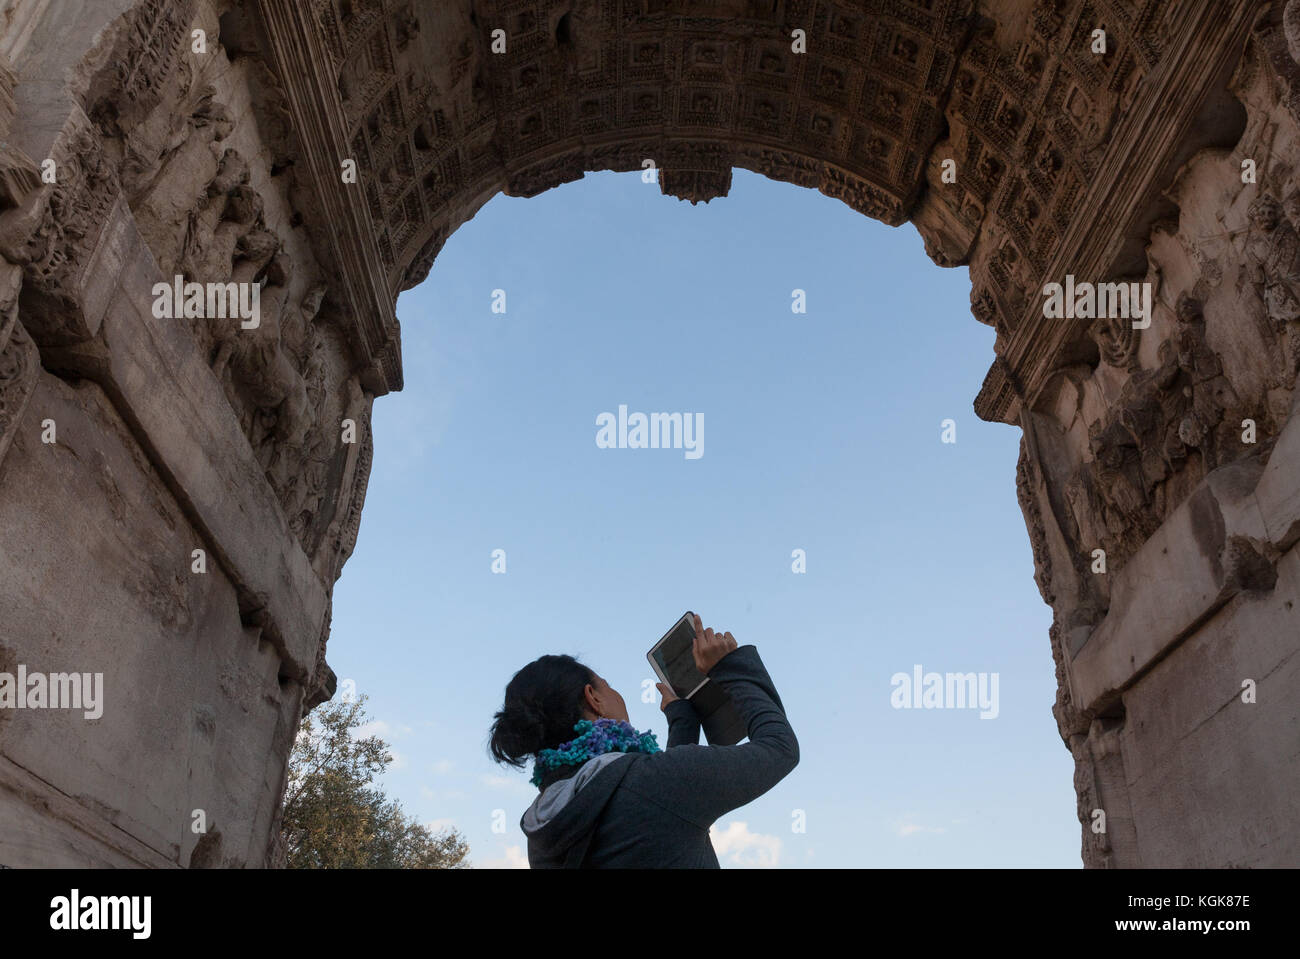 A tourist is taking a picture in the Roman Forum, Rome, Italy. Stock Photo